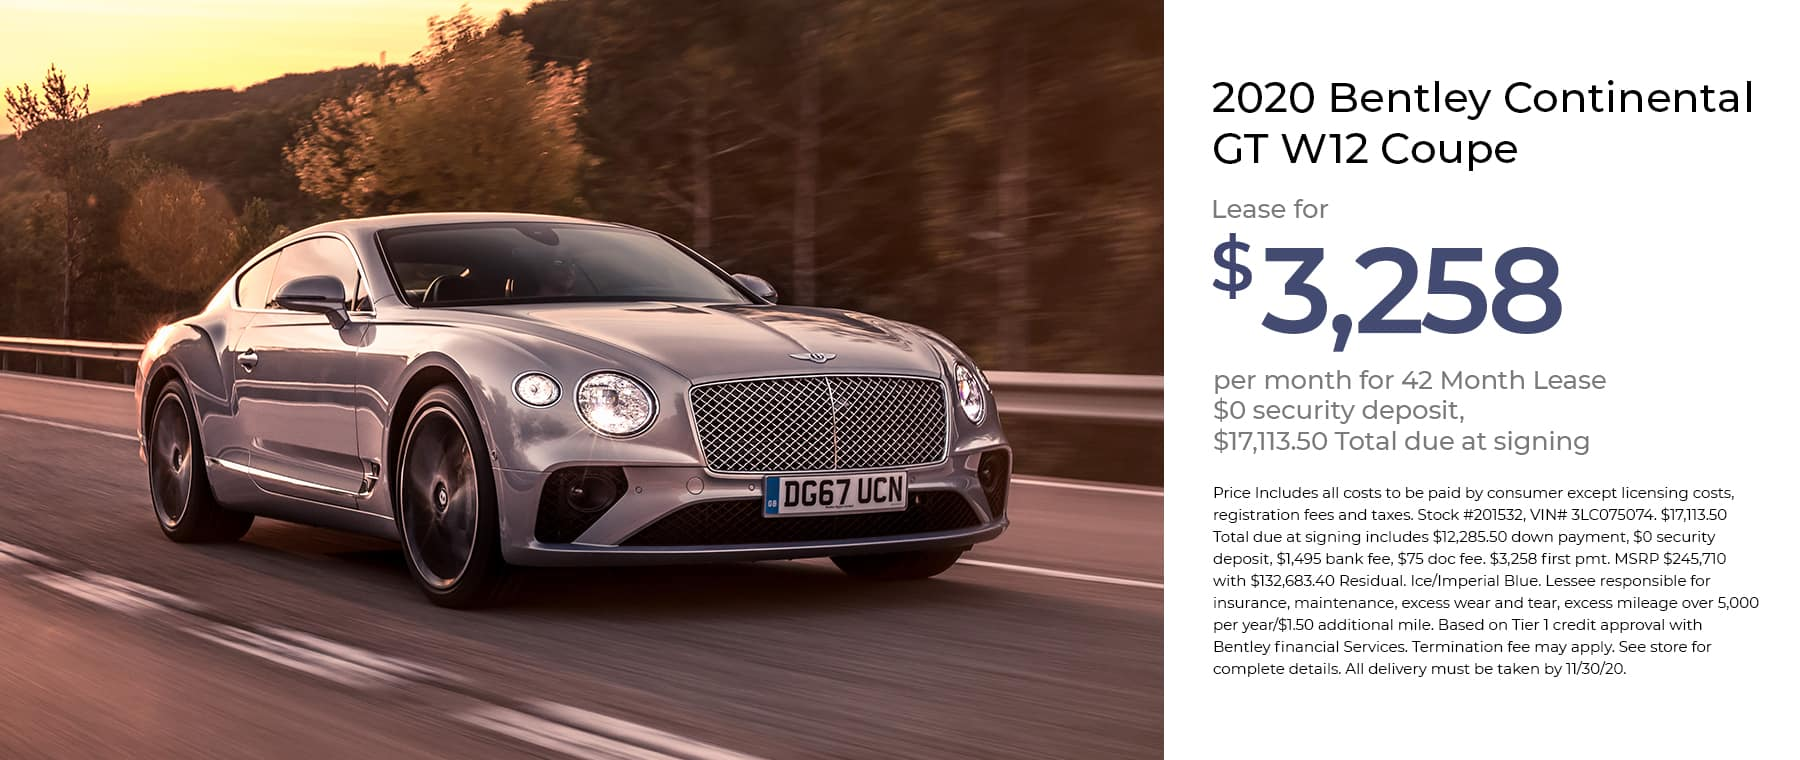 Bentley-Continental-GT-W12-Coupe-1800-x-760-November-2020